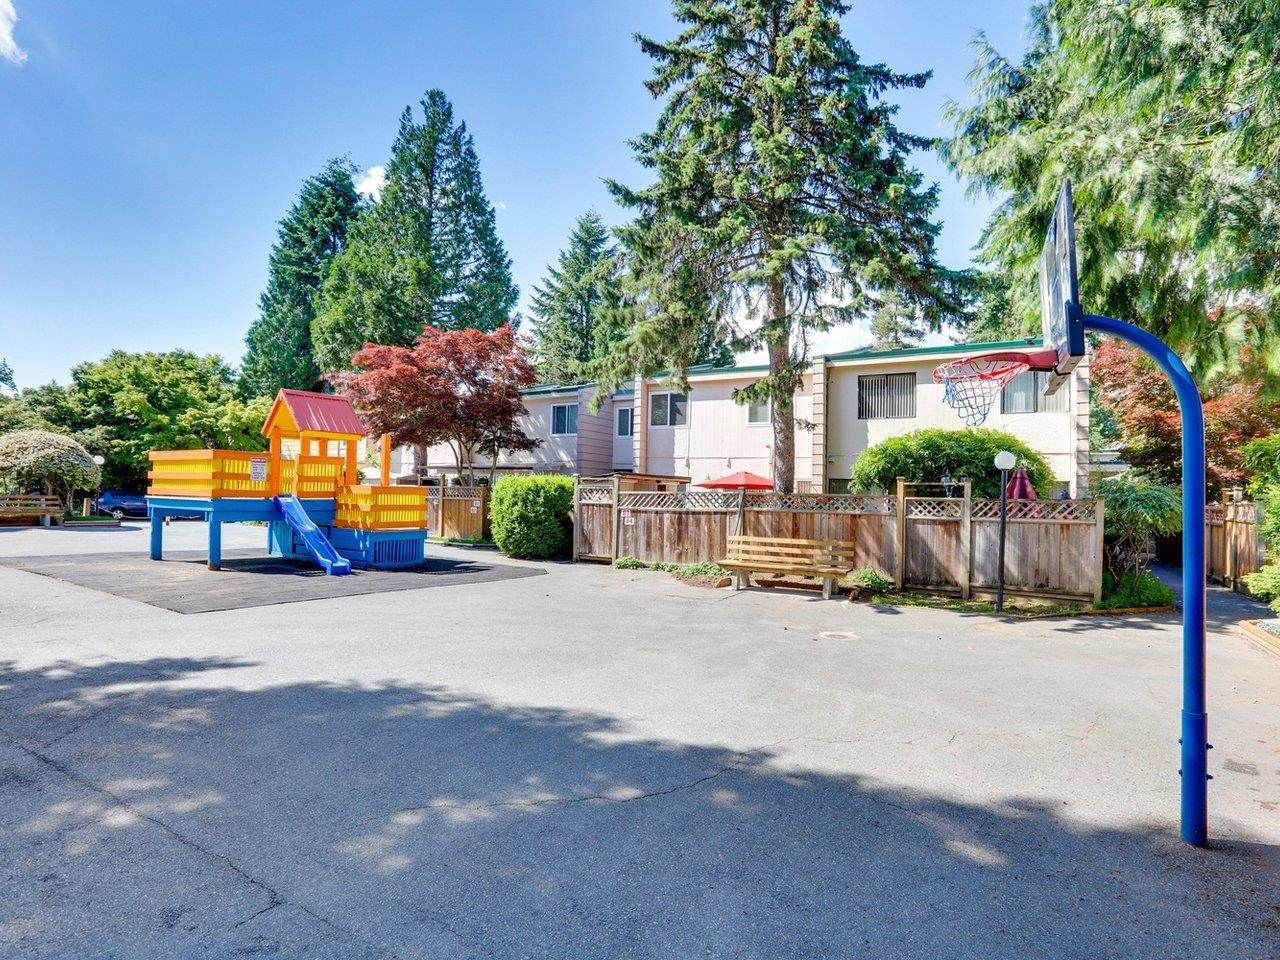 """Photo 21: Photos: 21 10585 153 Street in Surrey: Guildford Townhouse for sale in """"Guildford Mews"""" (North Surrey)  : MLS®# R2593242"""